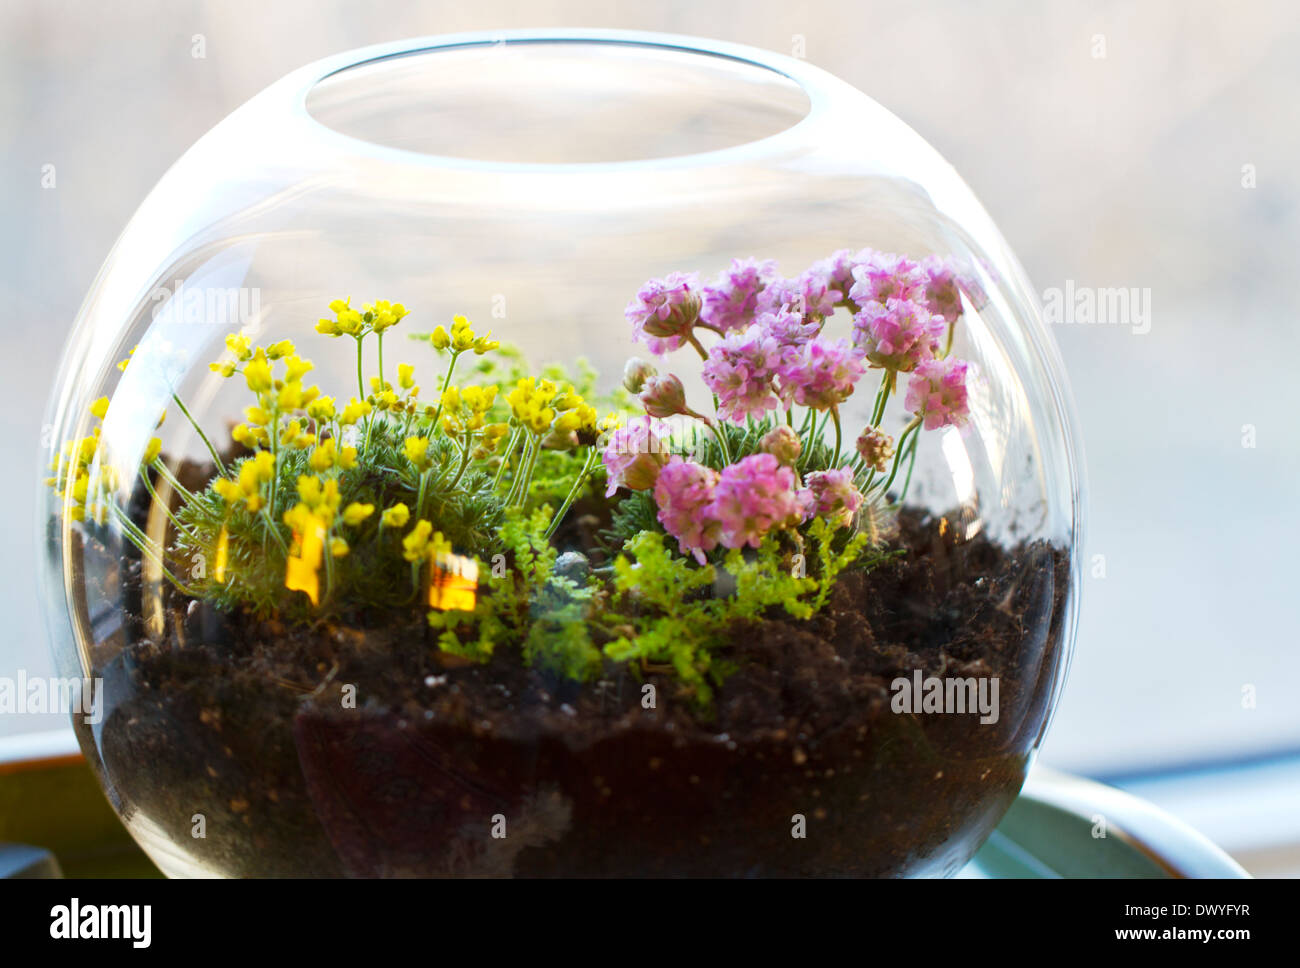 A Small Glass Terrarium With Plants Inside Stock Photo 67602747 Alamy